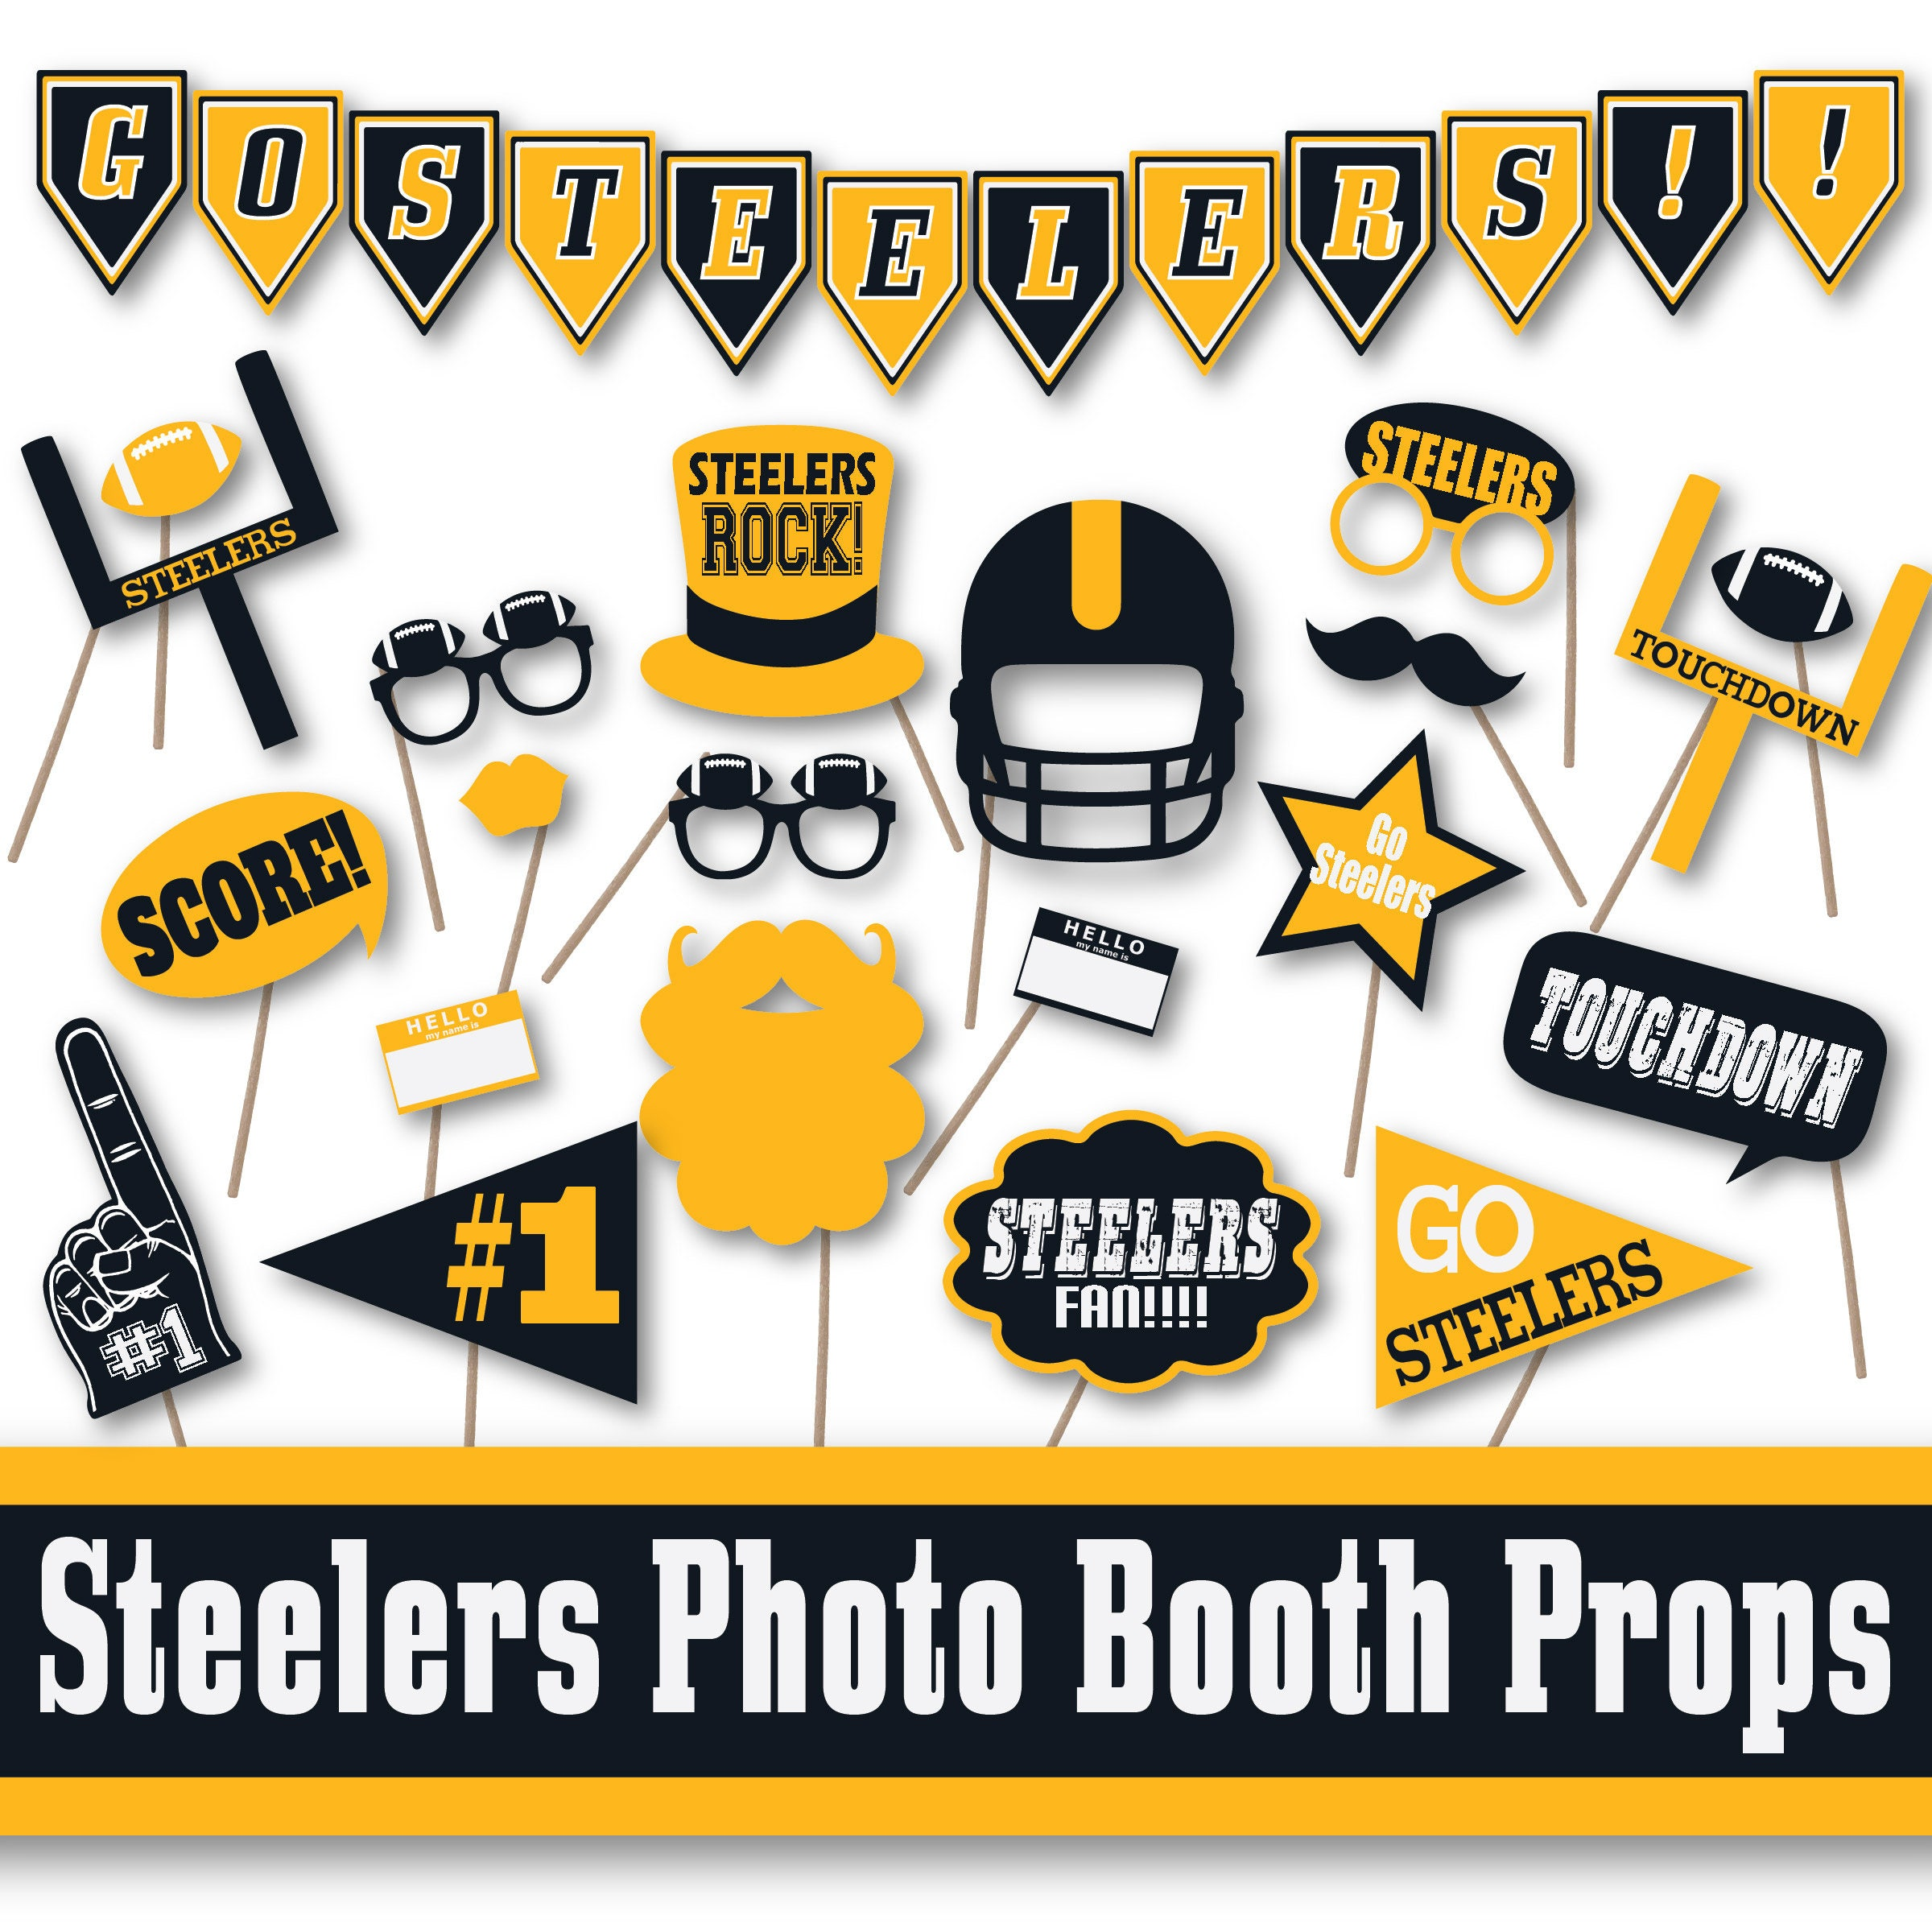 Steelers Football Photo Booth Props and Party Decorations | Etsy